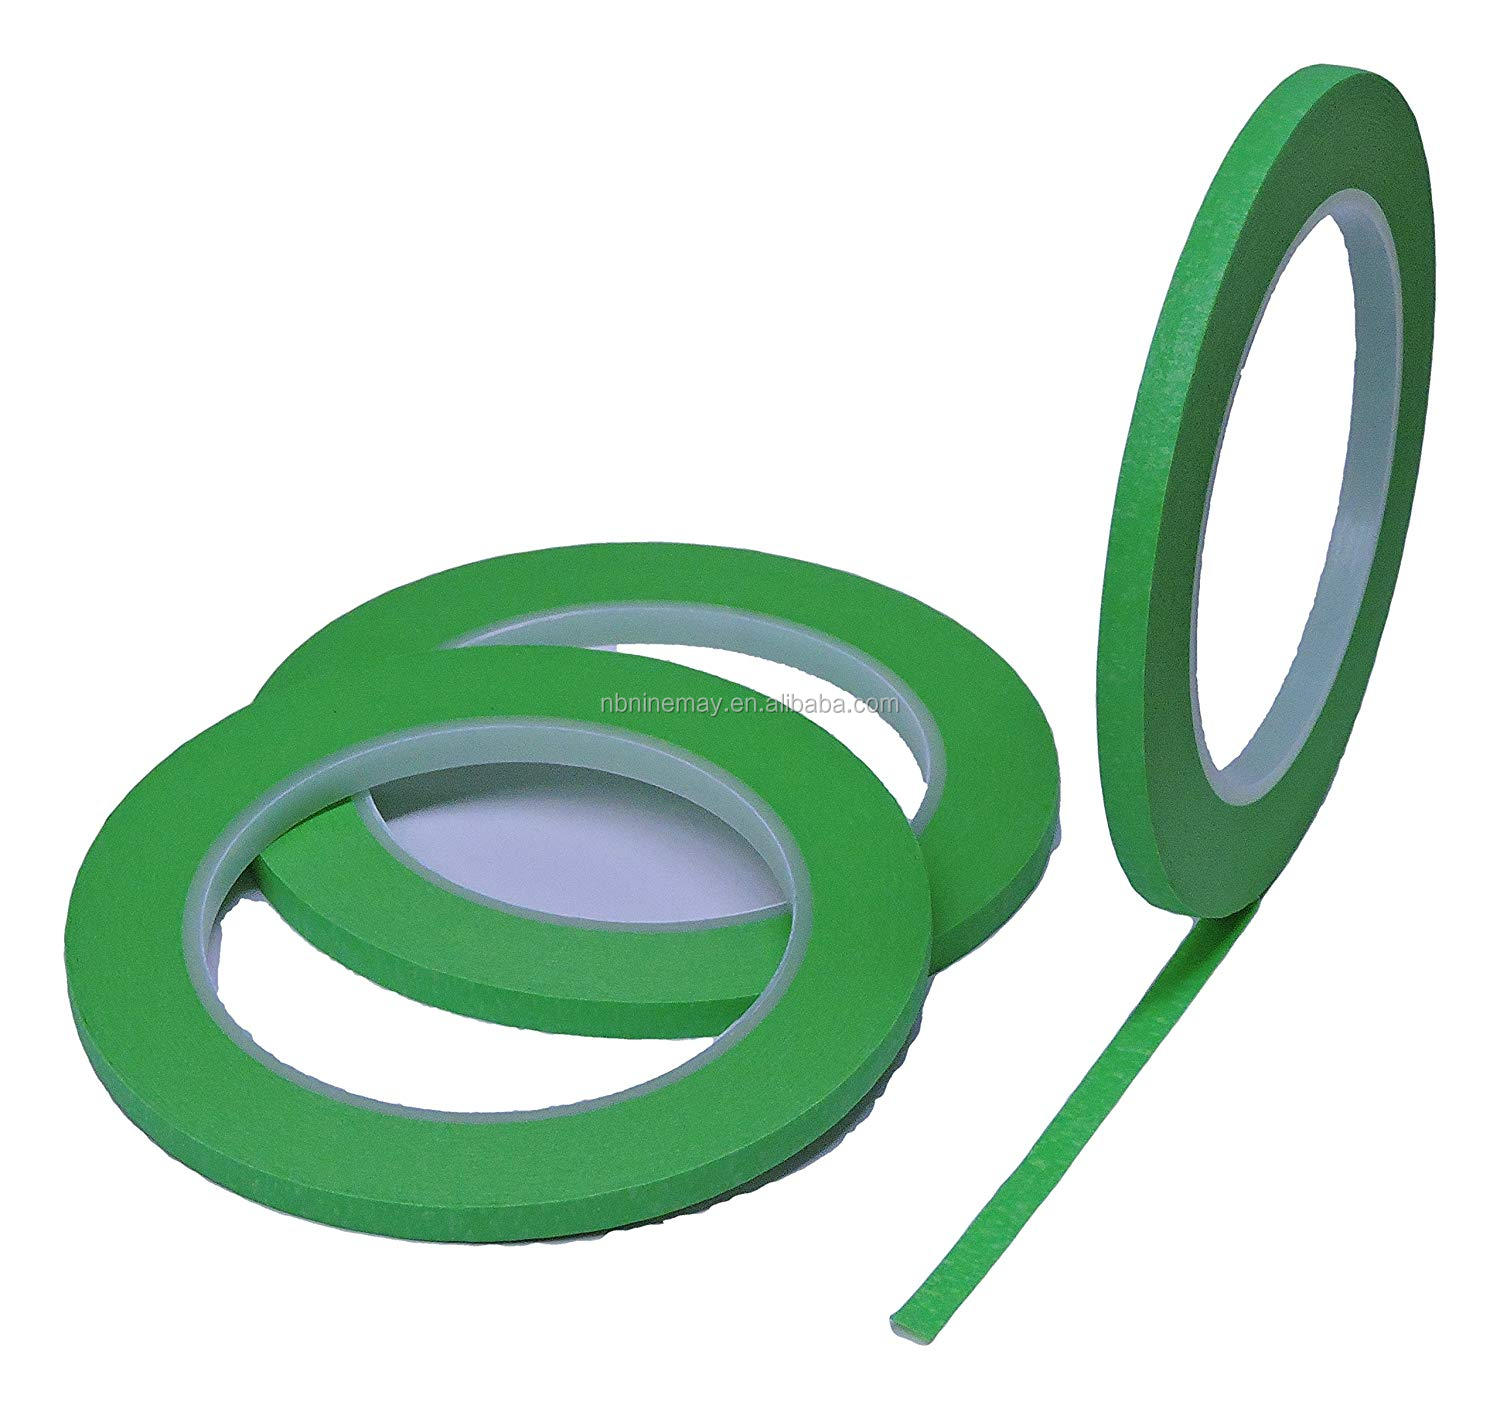 Manufacture Paint green paint tape  painters mate green masking tape crepet tape